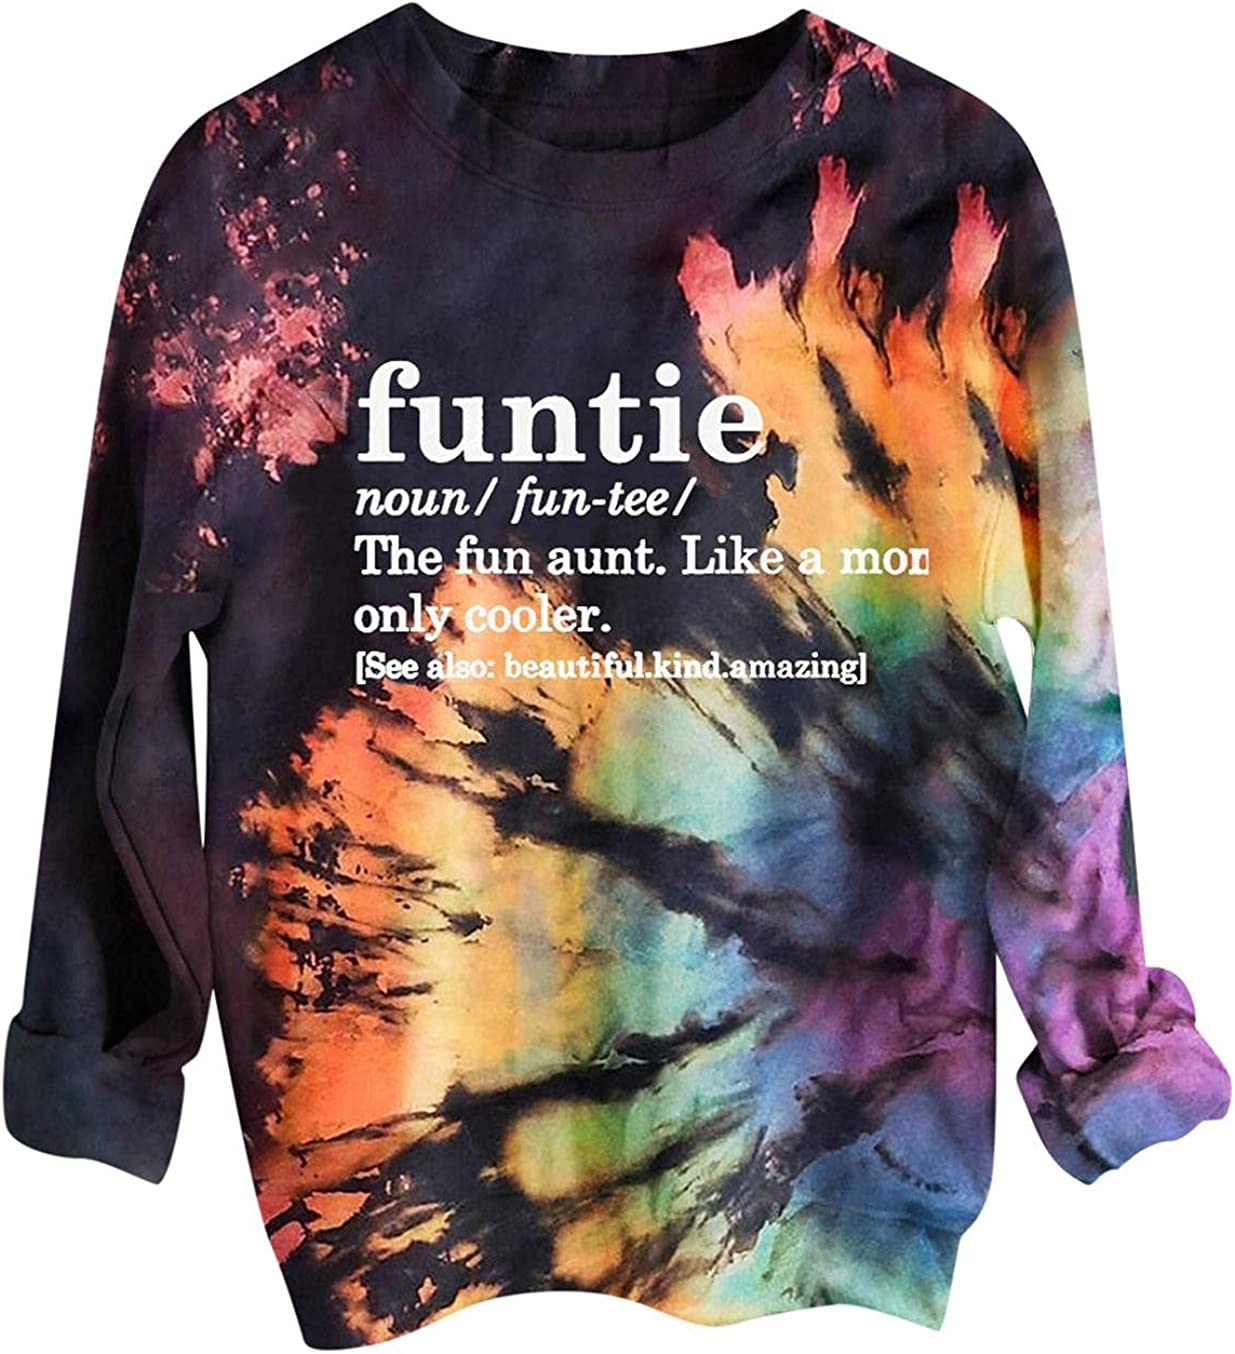 AODONG Long Sleeve Shirts for Womens Outer Banks Graphic Loose Casual Crewneck Tie Dye Print Sweatshirts Pullover Tops